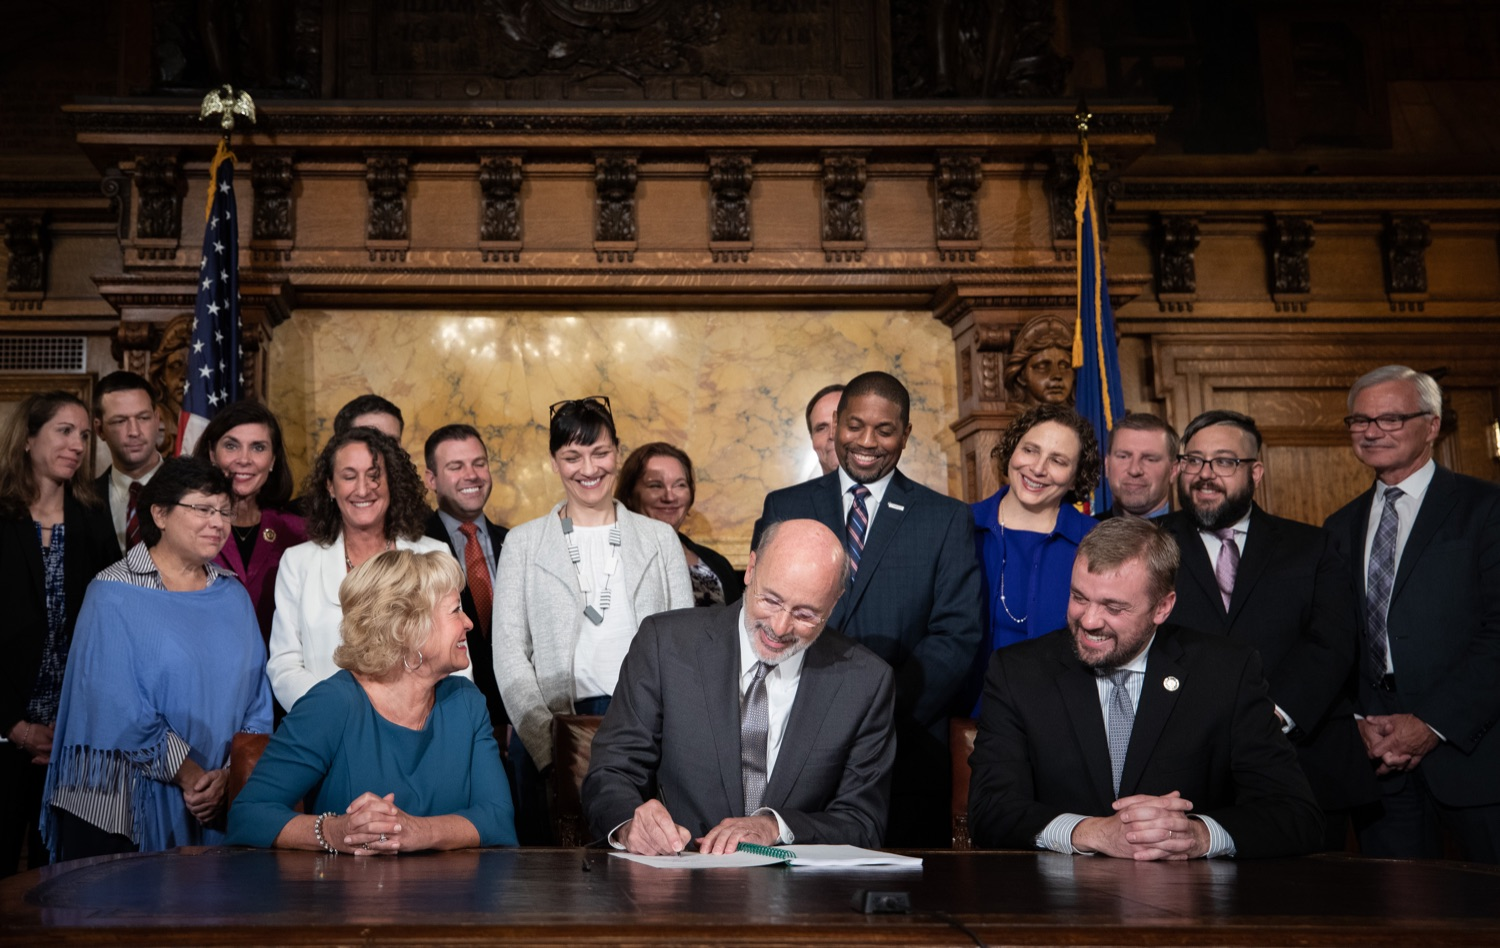 "<a href=""http://filesource.abacast.com/commonwealthofpa/photo/17554_gov_voter_reform_bill_dz_001.jpg"" target=""_blank"">⇣ Download Photo<br></a>Harrisburg, PA  Governor Tom Wolf signs the Election Reform Bill. Governor Wolf made voting more convenient and secure by signing Act 77 of 2019, the most significant improvement to Pennsylvanias elections in more than 80 years. The bipartisan compromise legislation takes effect for the April 2020 primary election and makes Pennsylvania a national leader with voter-friendly election reforms."